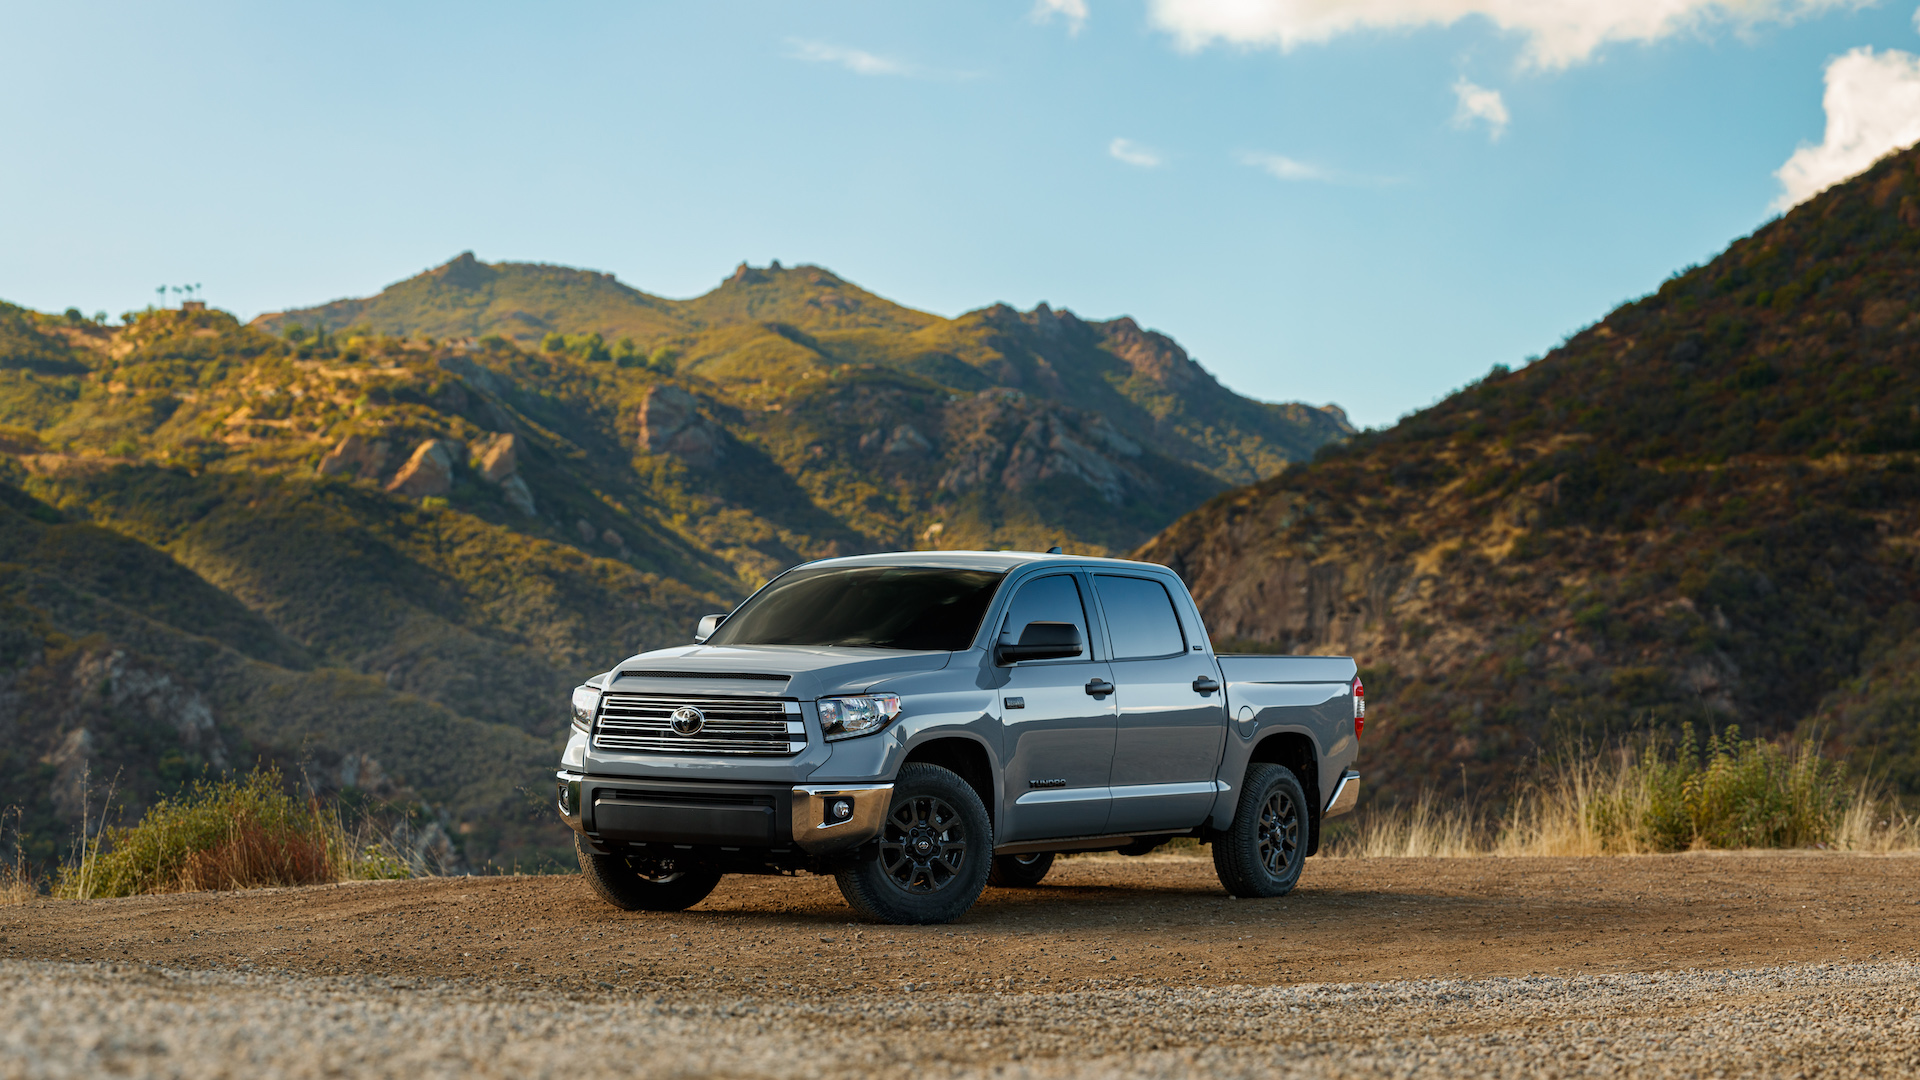 DRIVEN: 2021 Toyota Tundra [Review]